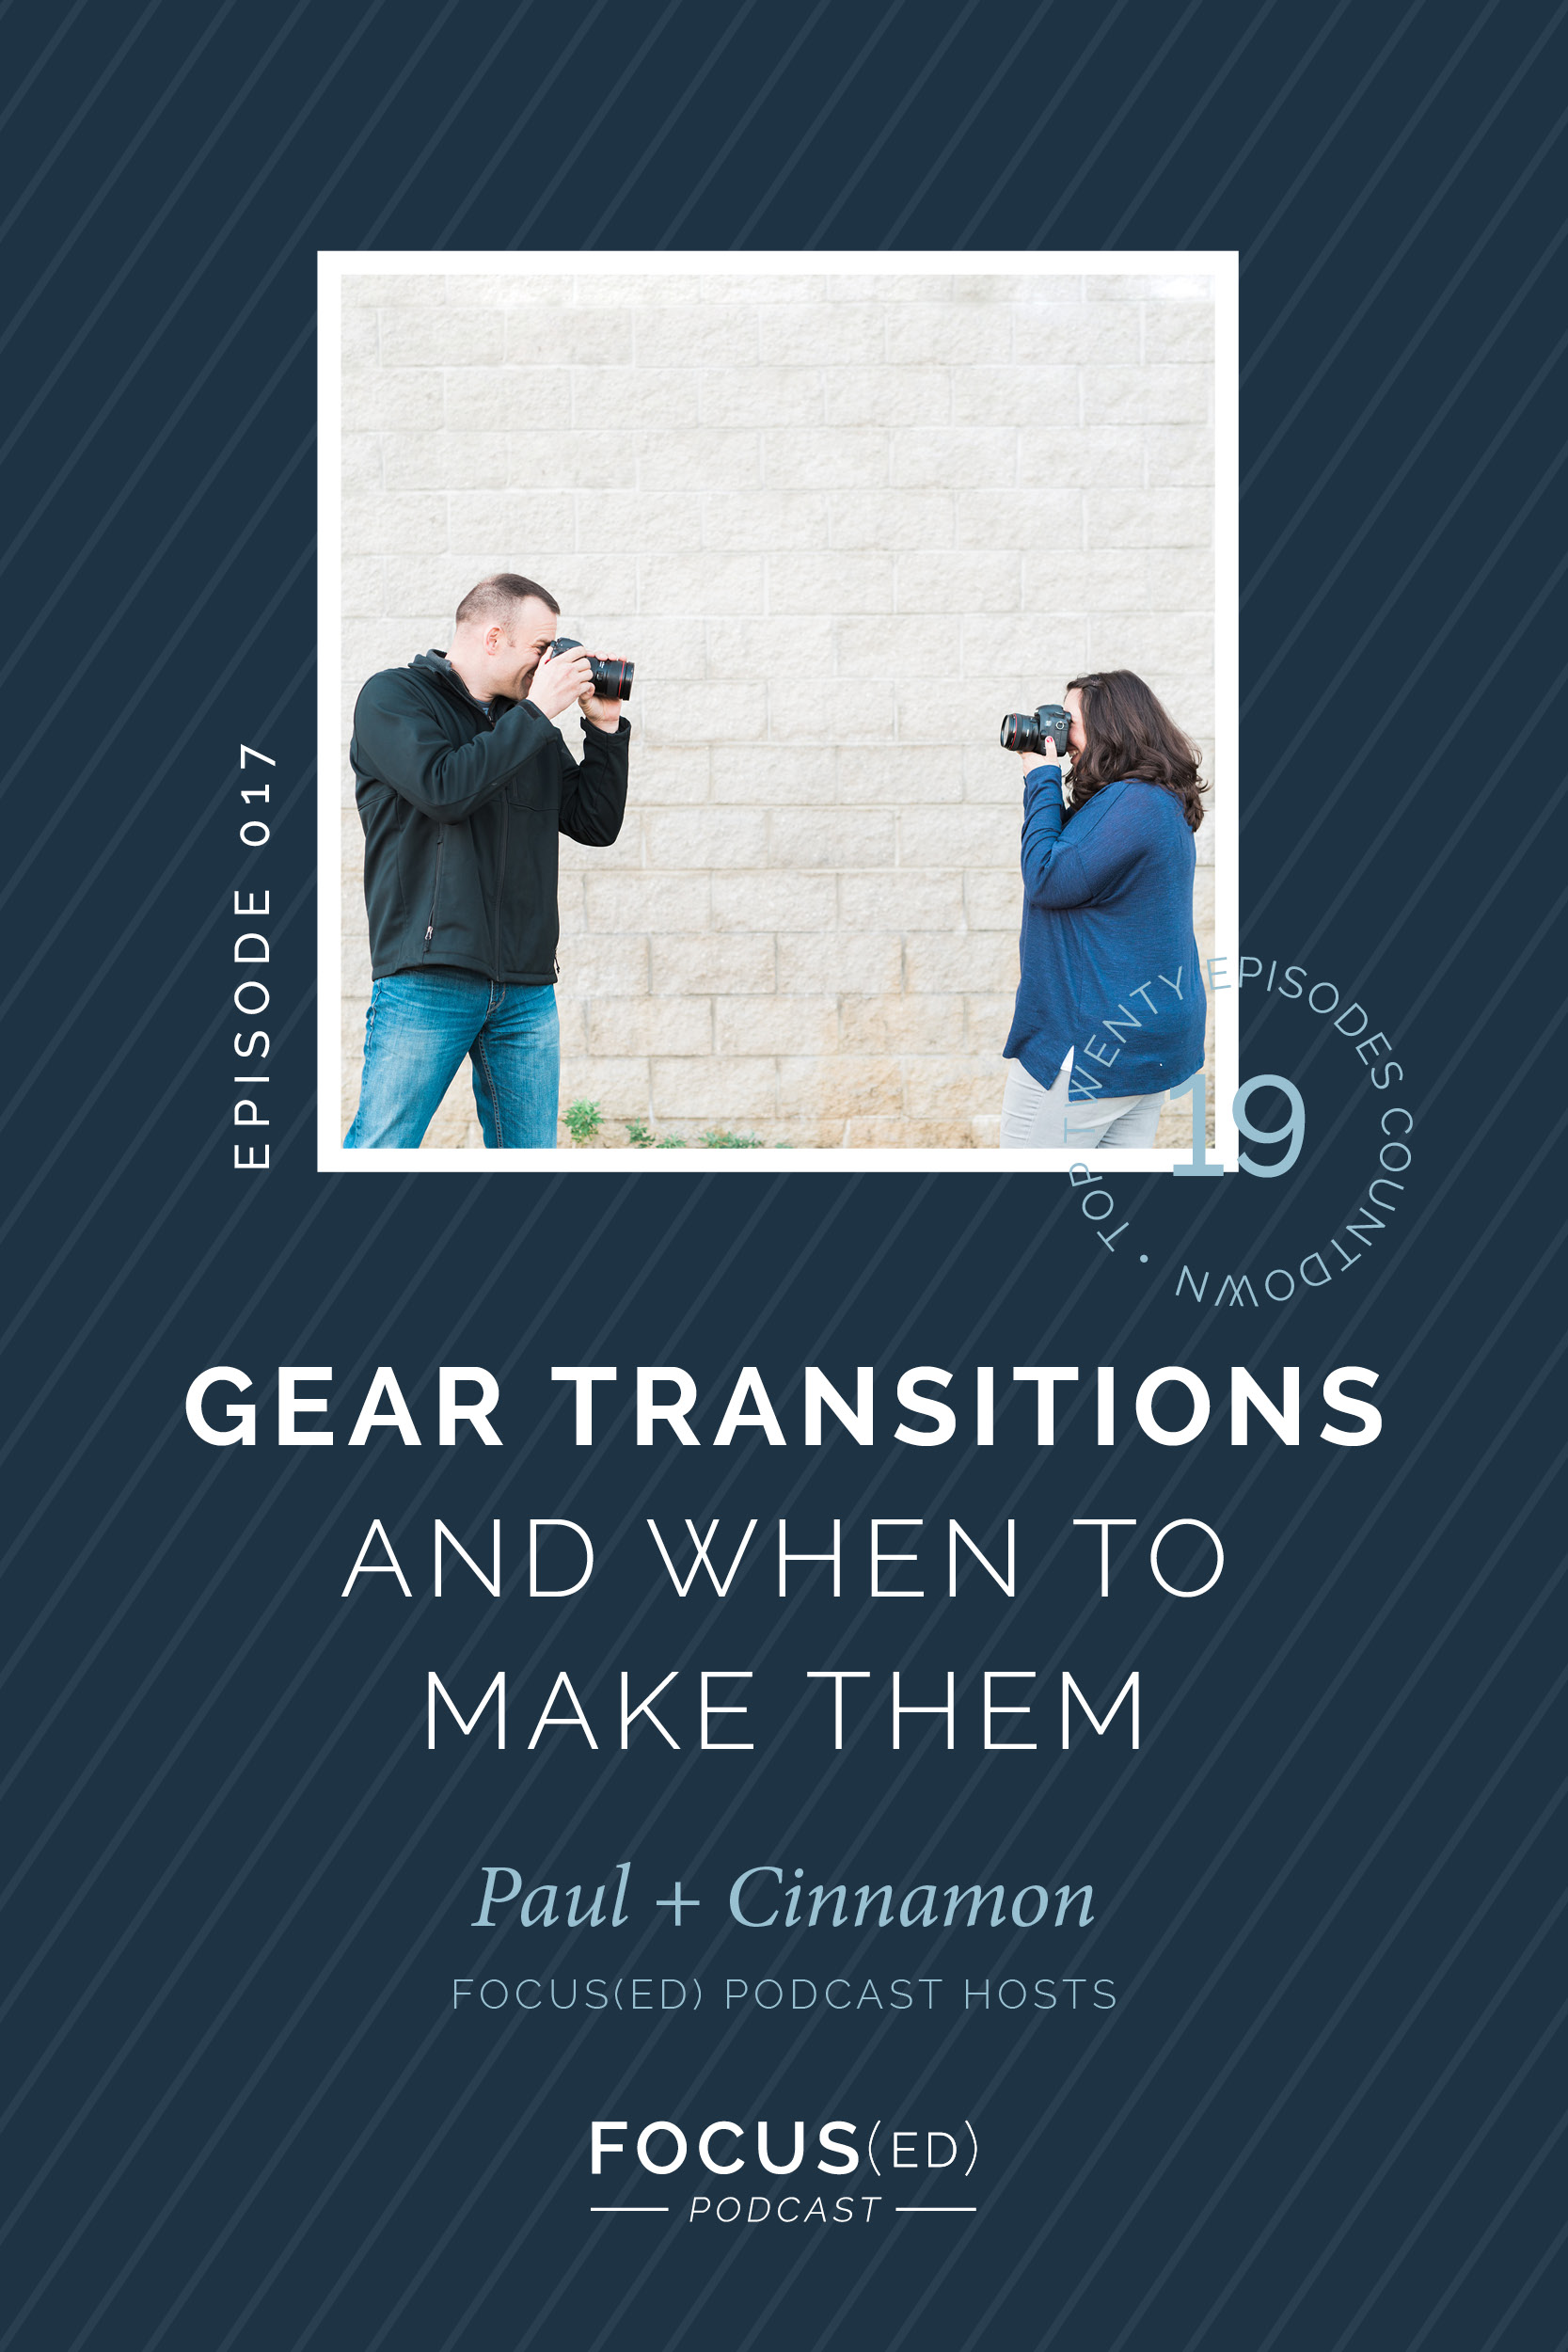 When to make gear transitions in a photography business | What gear do I buy first as a photographer? | Focus(ed) Podcast Top 20